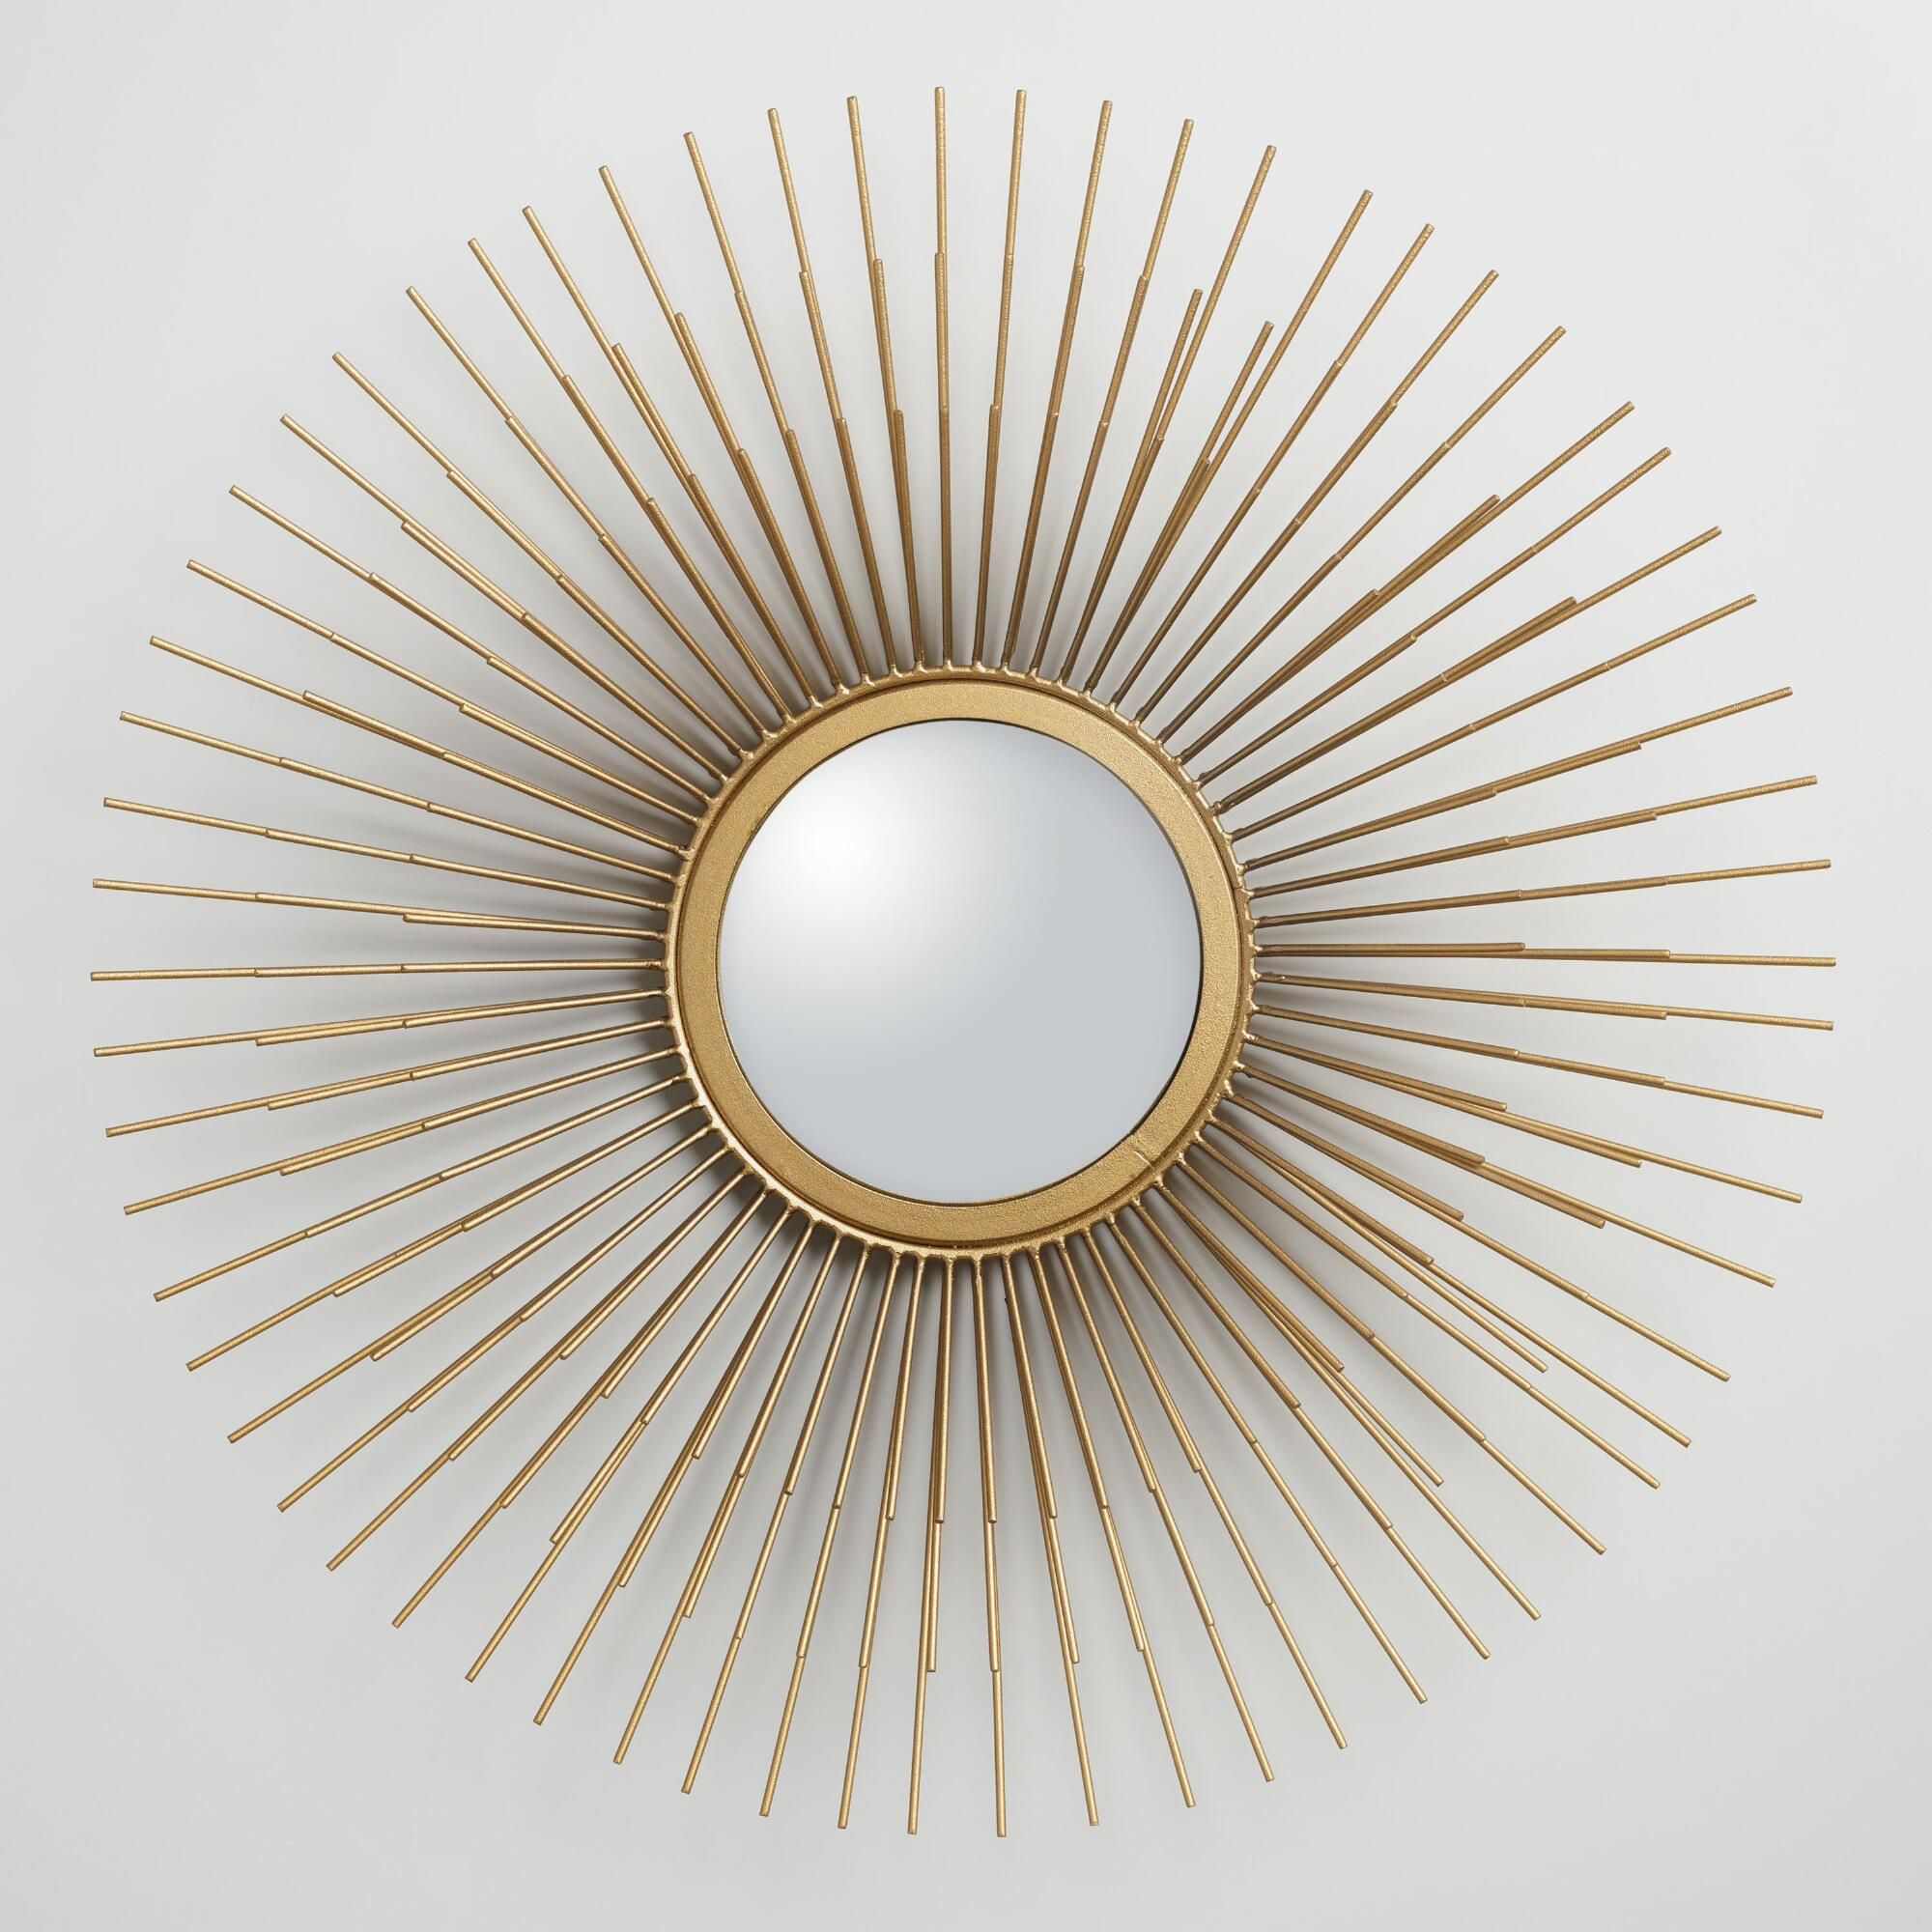 Bring bold mid-century modern style to a room with our mirror featuring  three layers